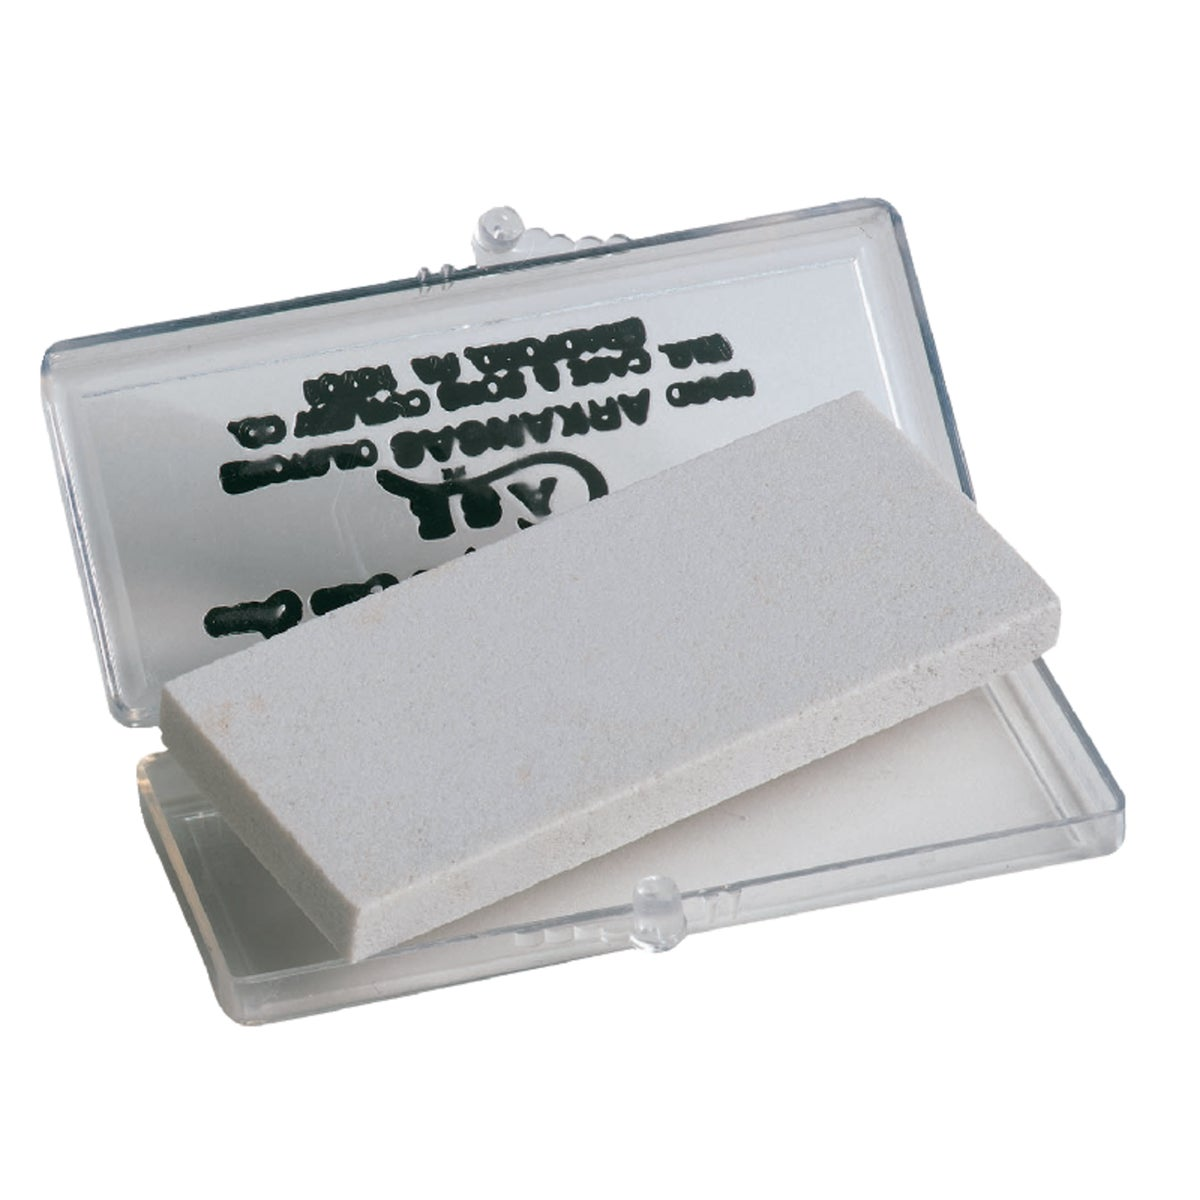 HARD SHARPENING STONE